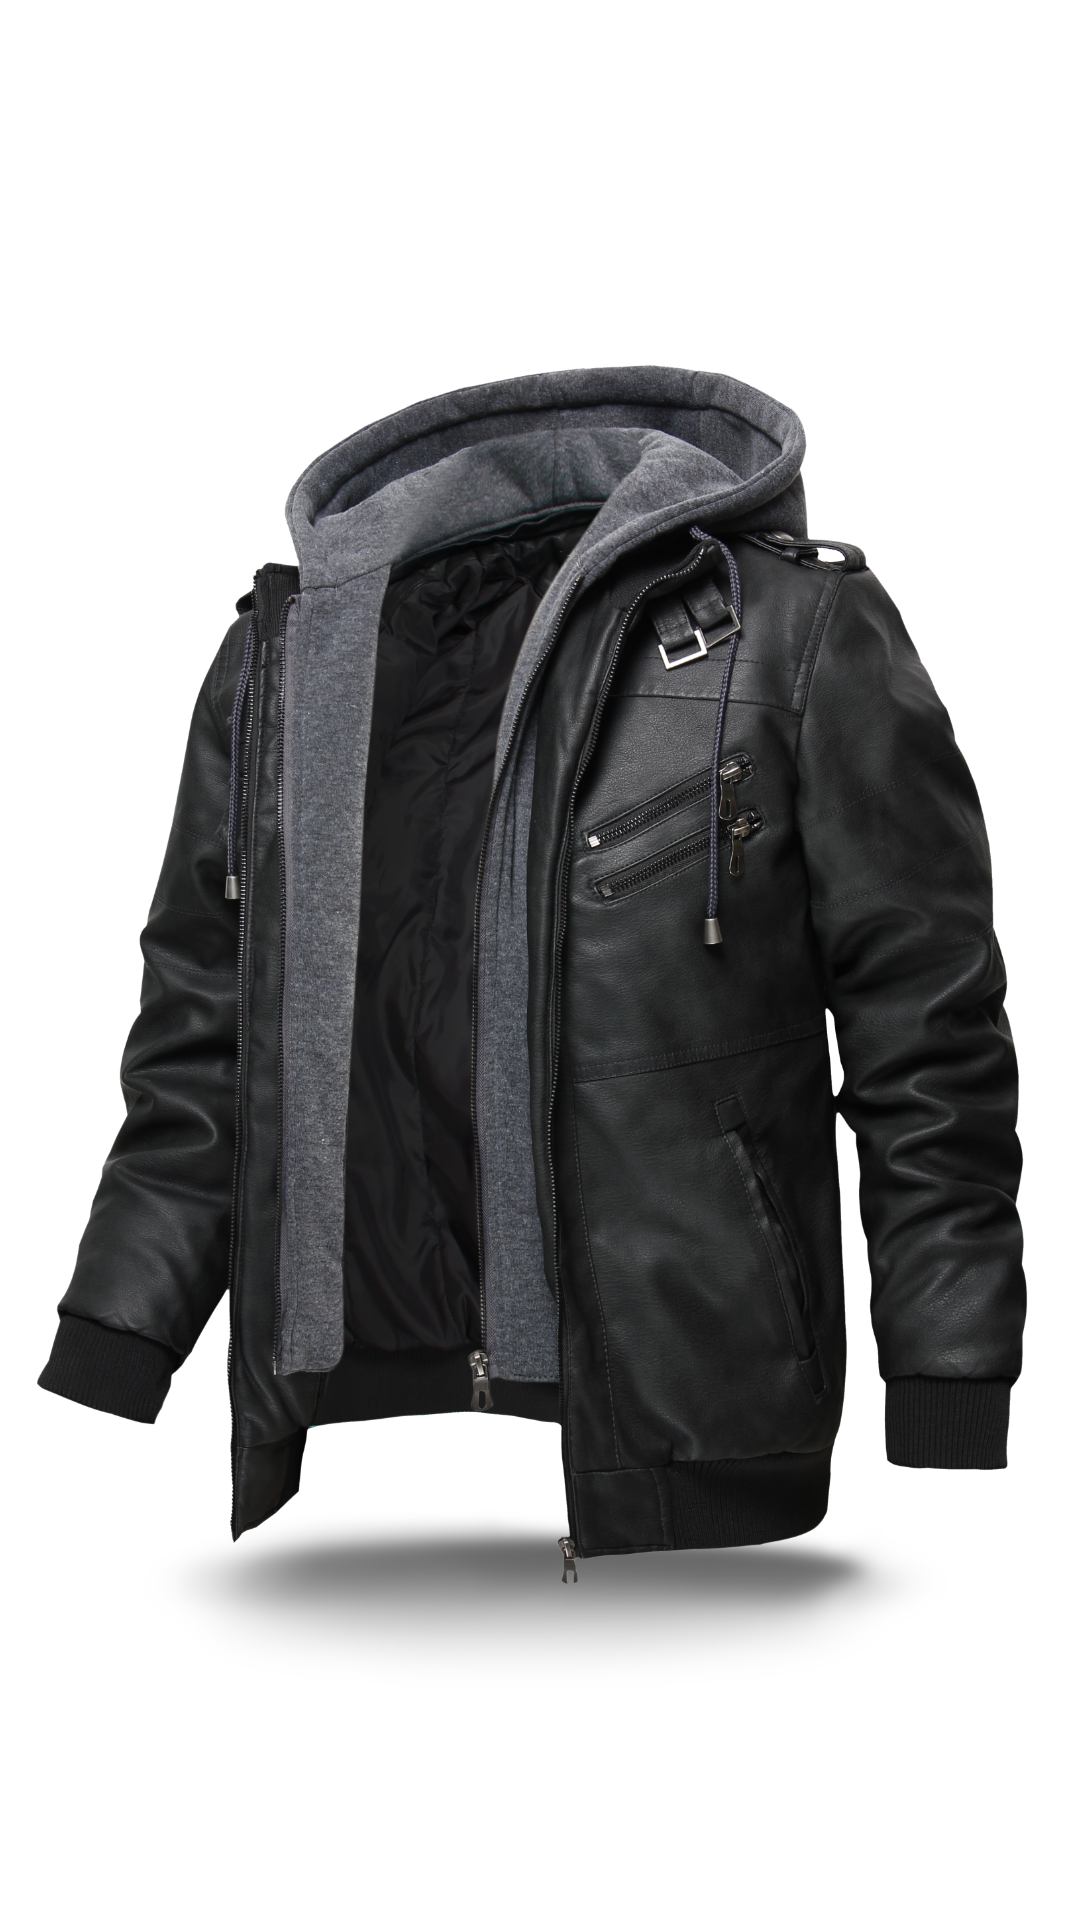 30 Off Today Stylish Leather Jacket Mens Outfits Leather Jacket Men [ 1920 x 1080 Pixel ]